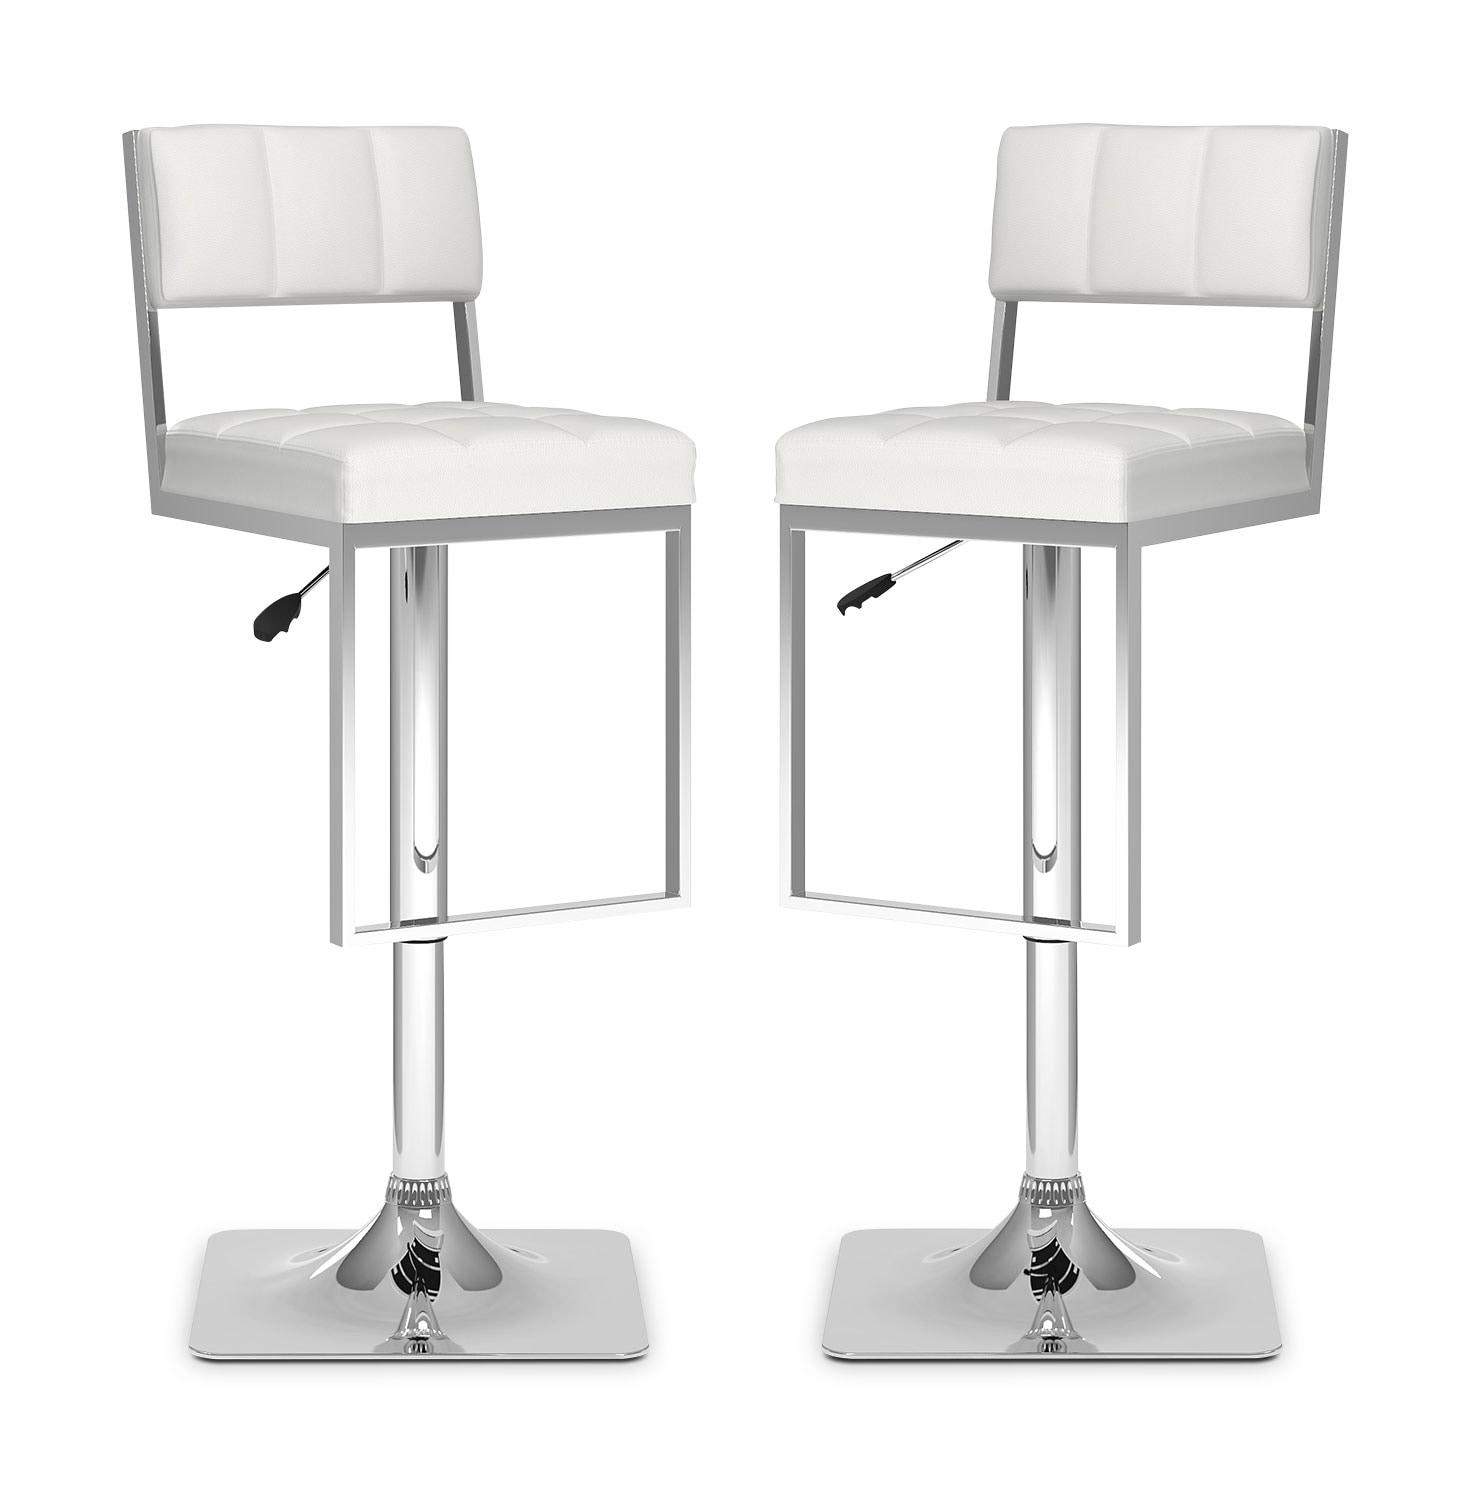 CorLiving Square-Tufted Wide Adjustable Bar Stool, Set of 2 – White